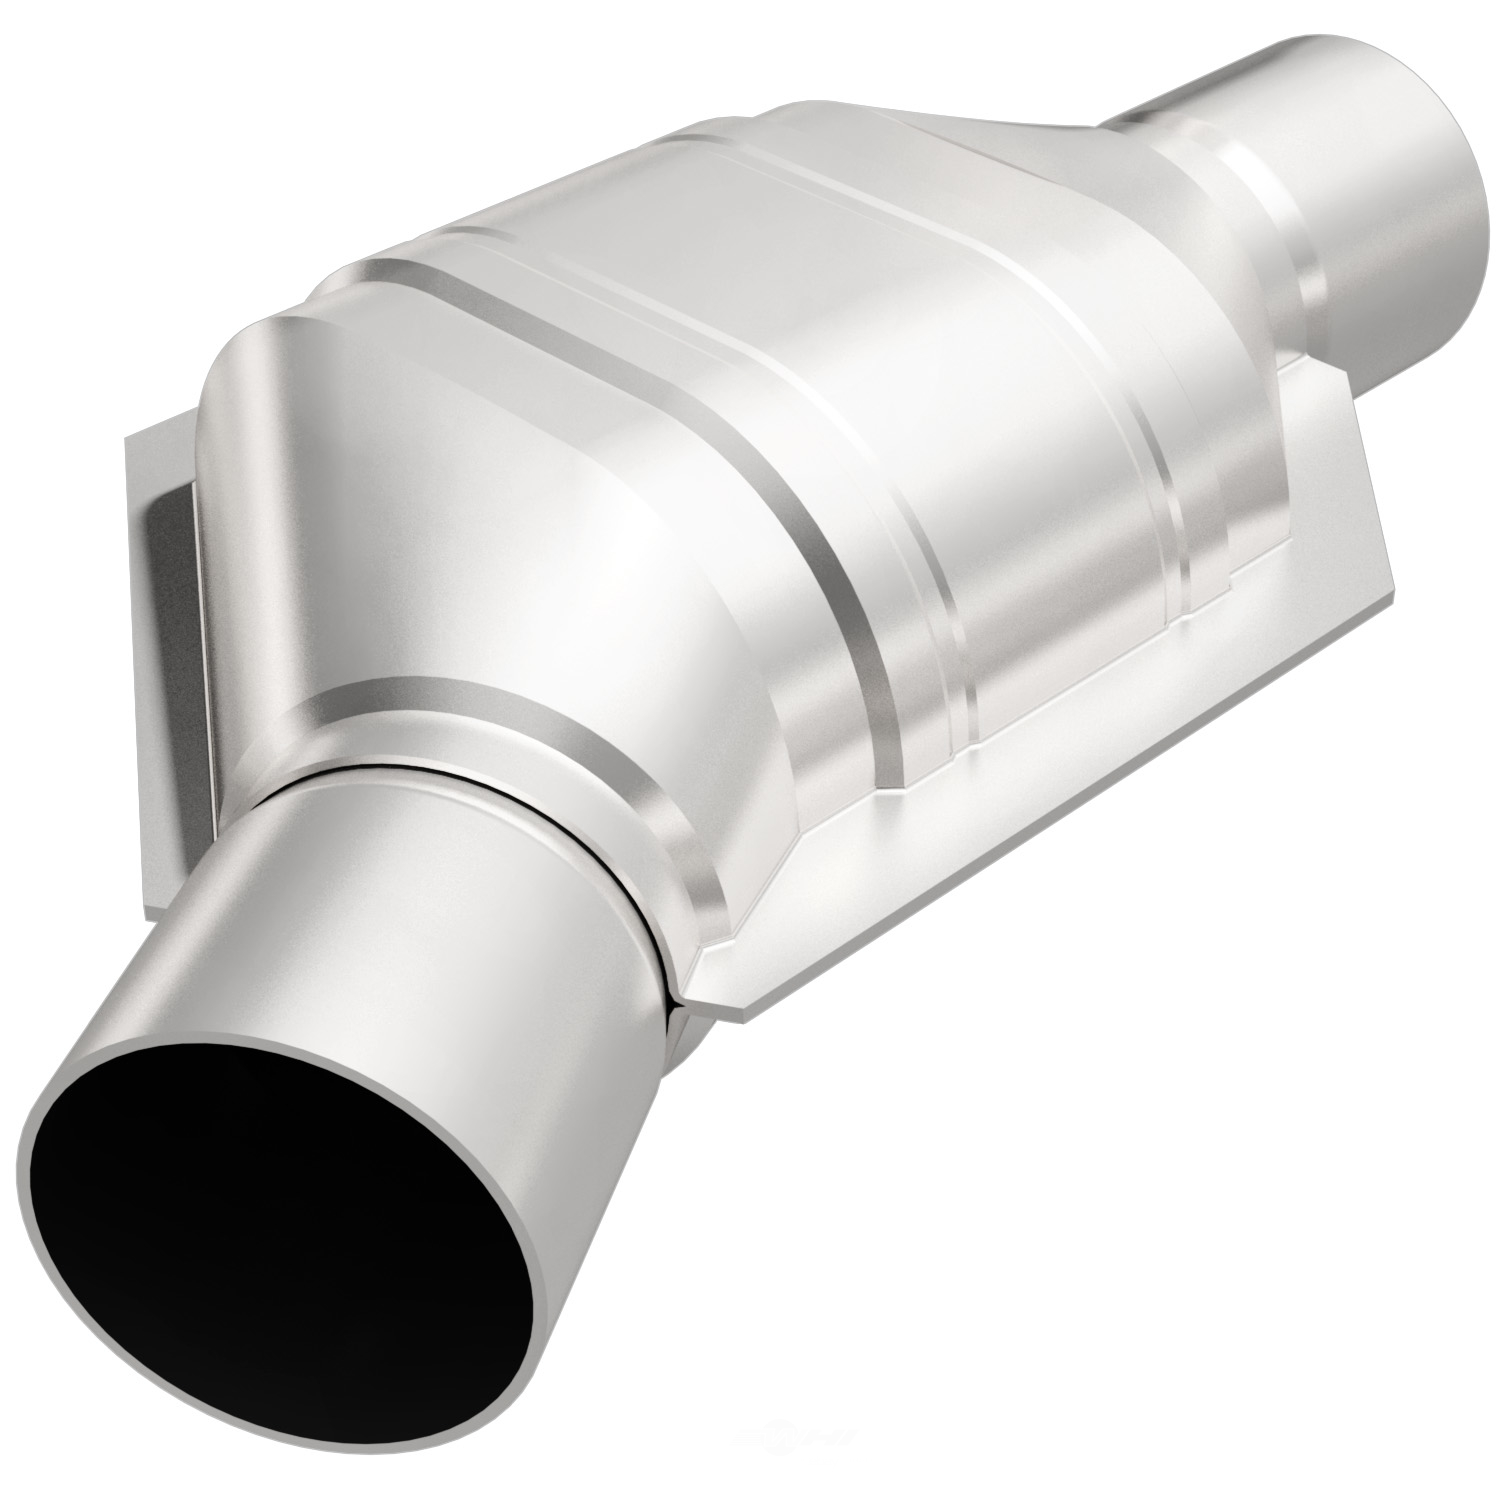 MAGNAFLOW CARB COMPLIANT CONVERTER - 2in. Universal California OBDII Catalytic Converter - MFC 441174